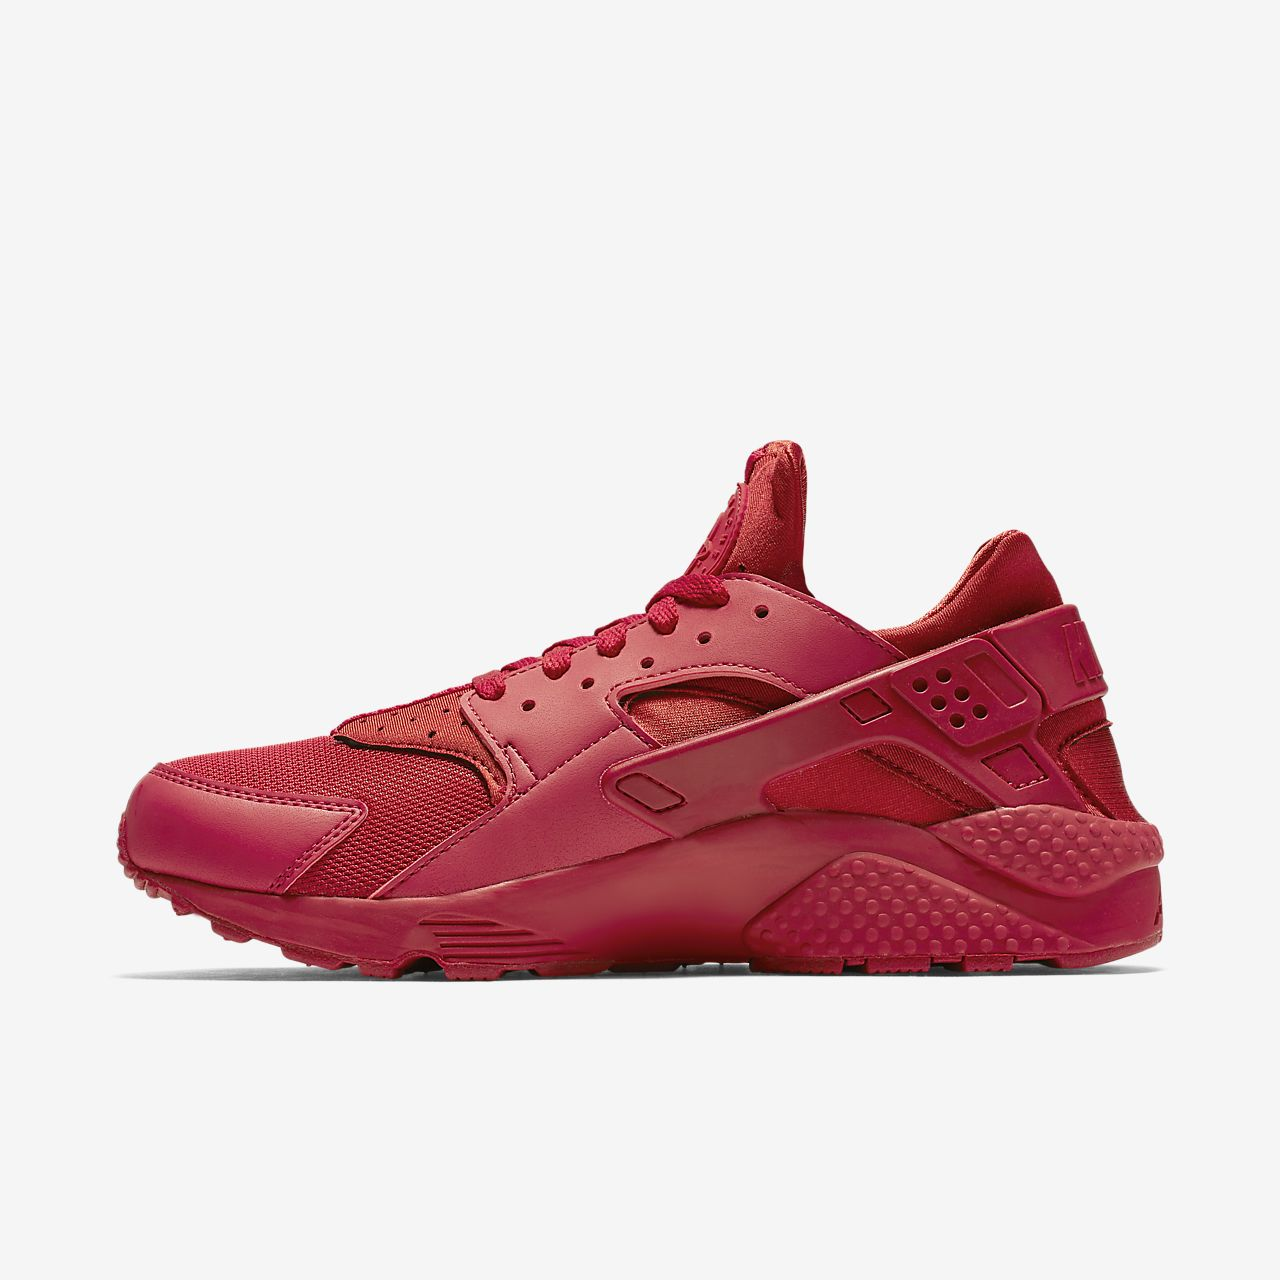 new product 71ad2 07b6e ... Nike Air Huarache Men s Shoe